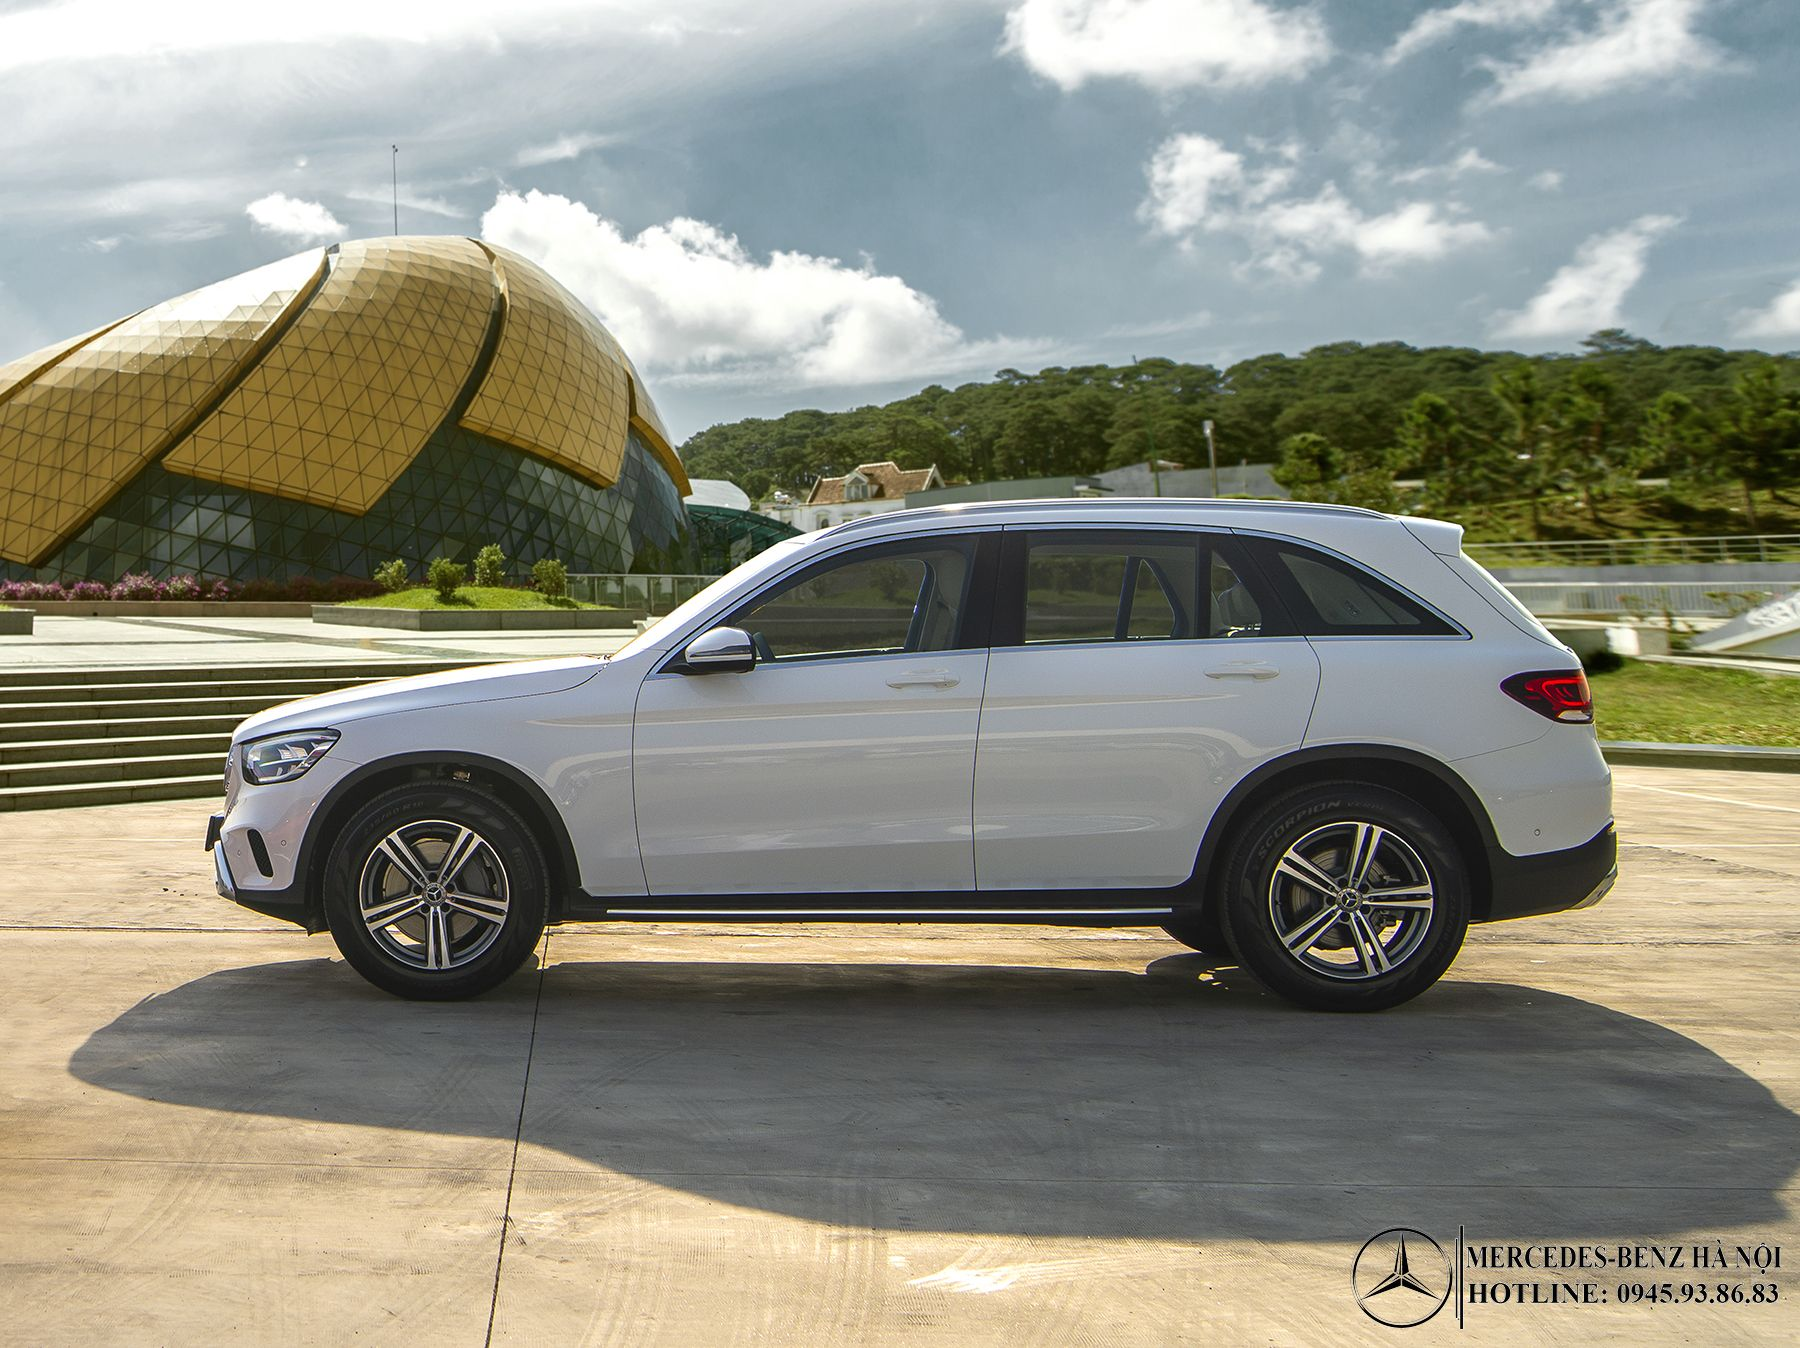 than-xe-Mercedes-Benz-GLC-200-2020_mercedeshanoi-com-vn (2)